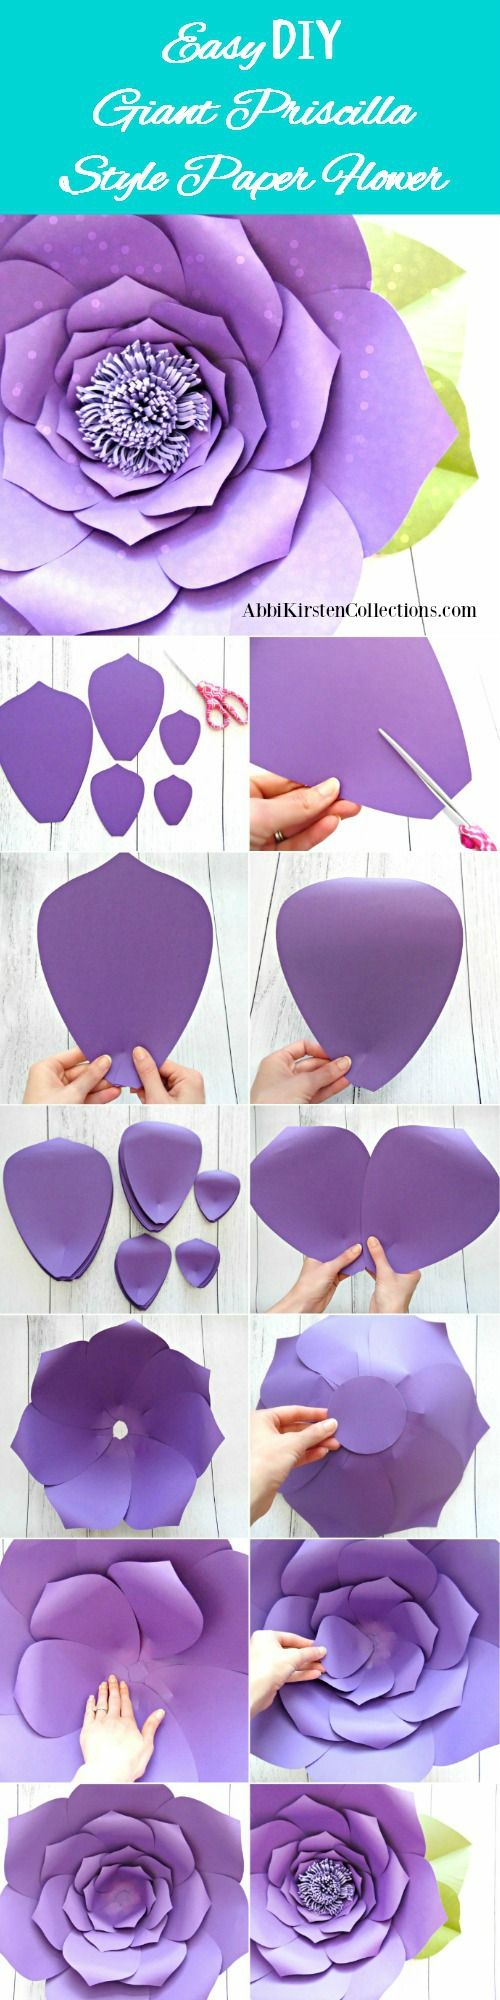 How to make large paper flowers easy diy giant paper flower printable giant paper flower templates easy diy giant paper flowers flower tutorials abbikirstencollections mightylinksfo